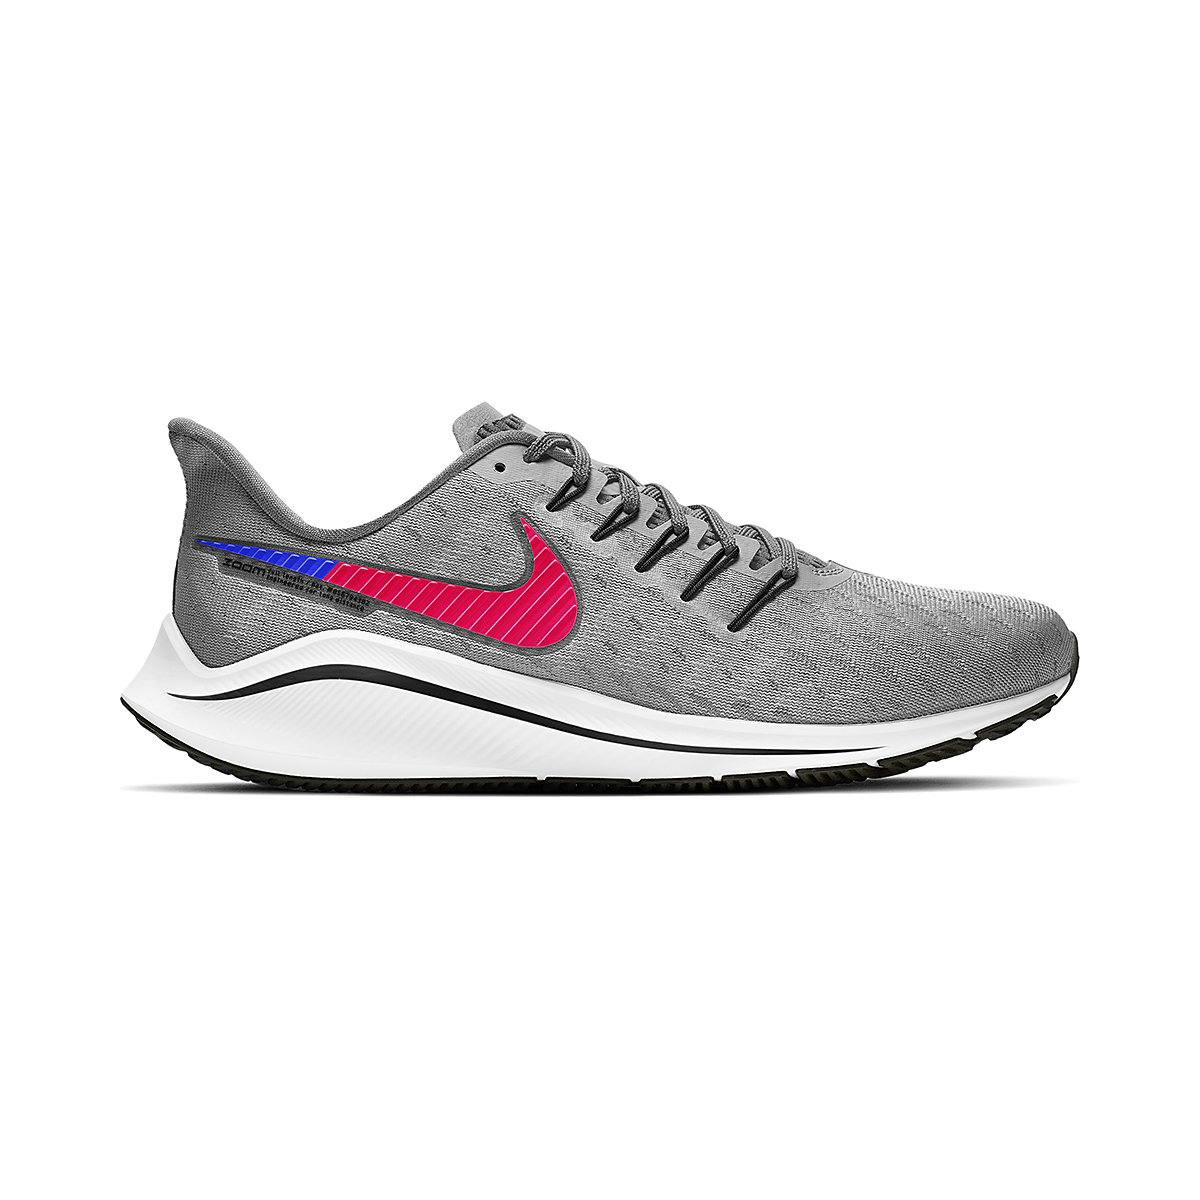 Men's Nike Vomero 14 Running Shoe - Color: Wolf Grey - Size: 6 - Width: Regular, Wolf Grey, large, image 1